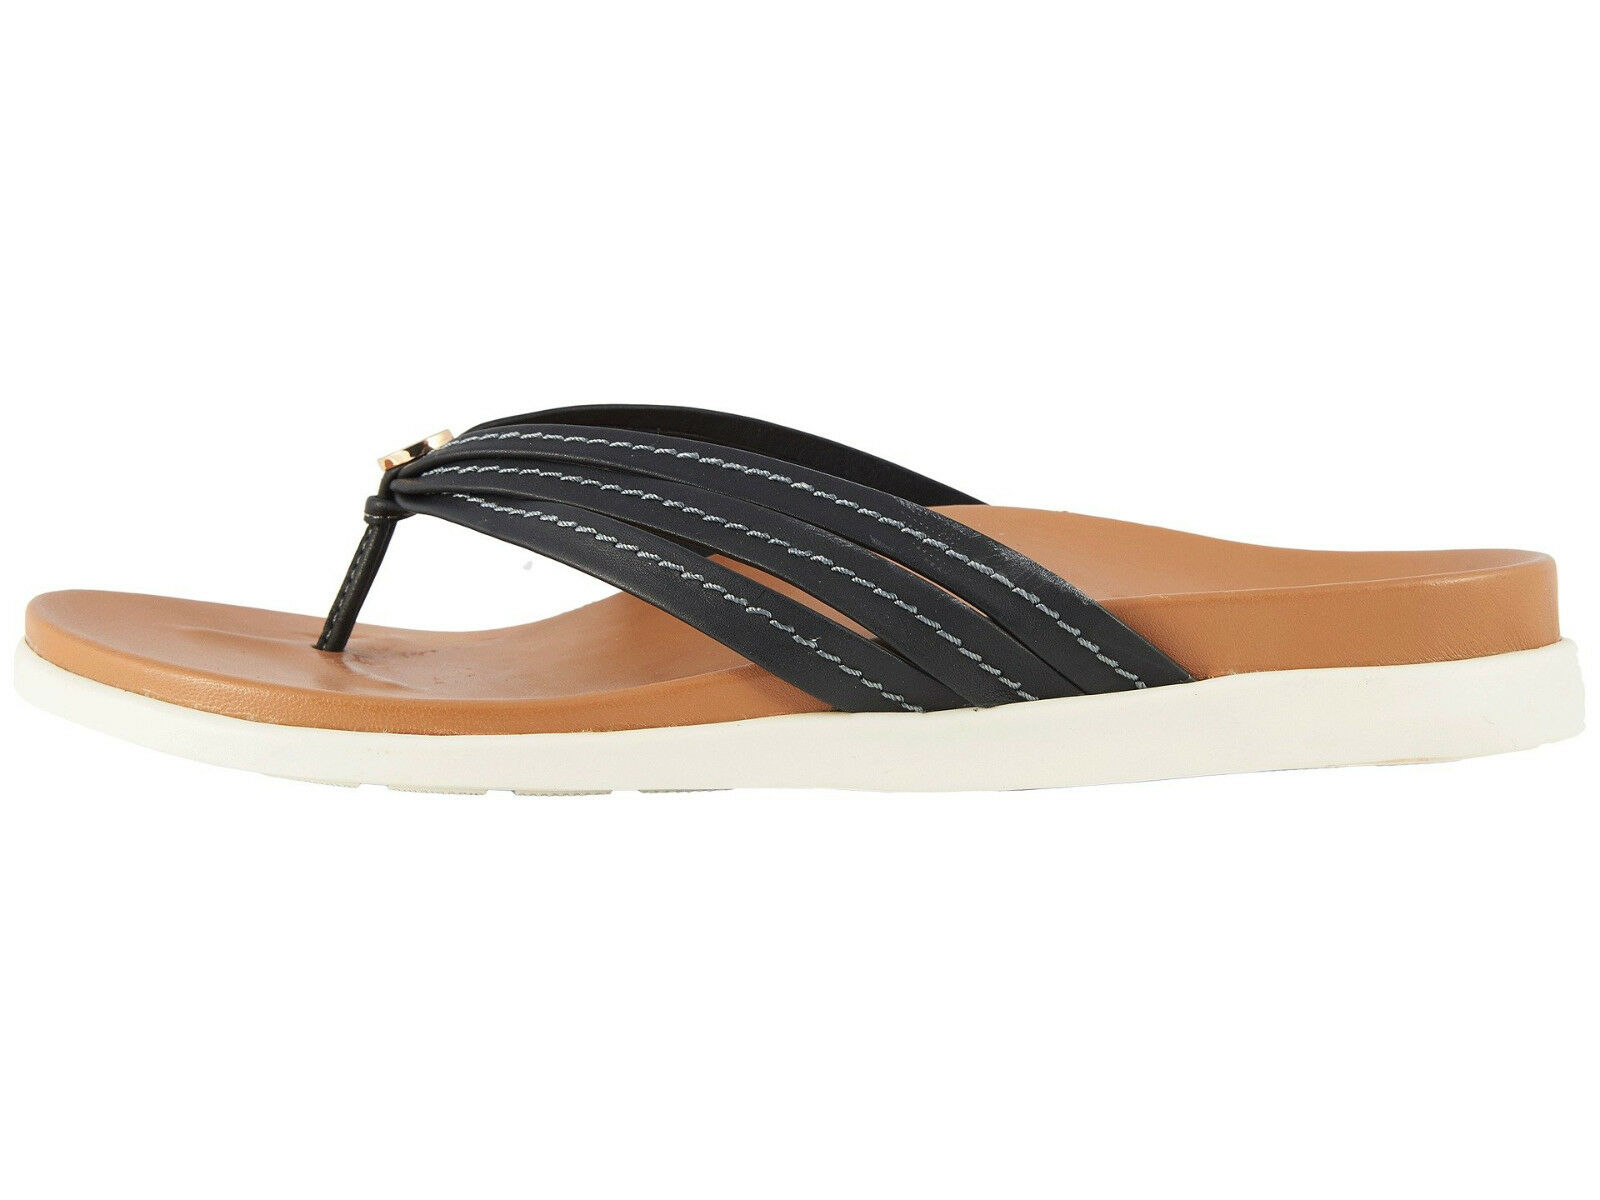 donna Vionic Catalina Flipflop Sandal Palm Catalina nero 100% Authentic Authentic Authentic New cd22fe